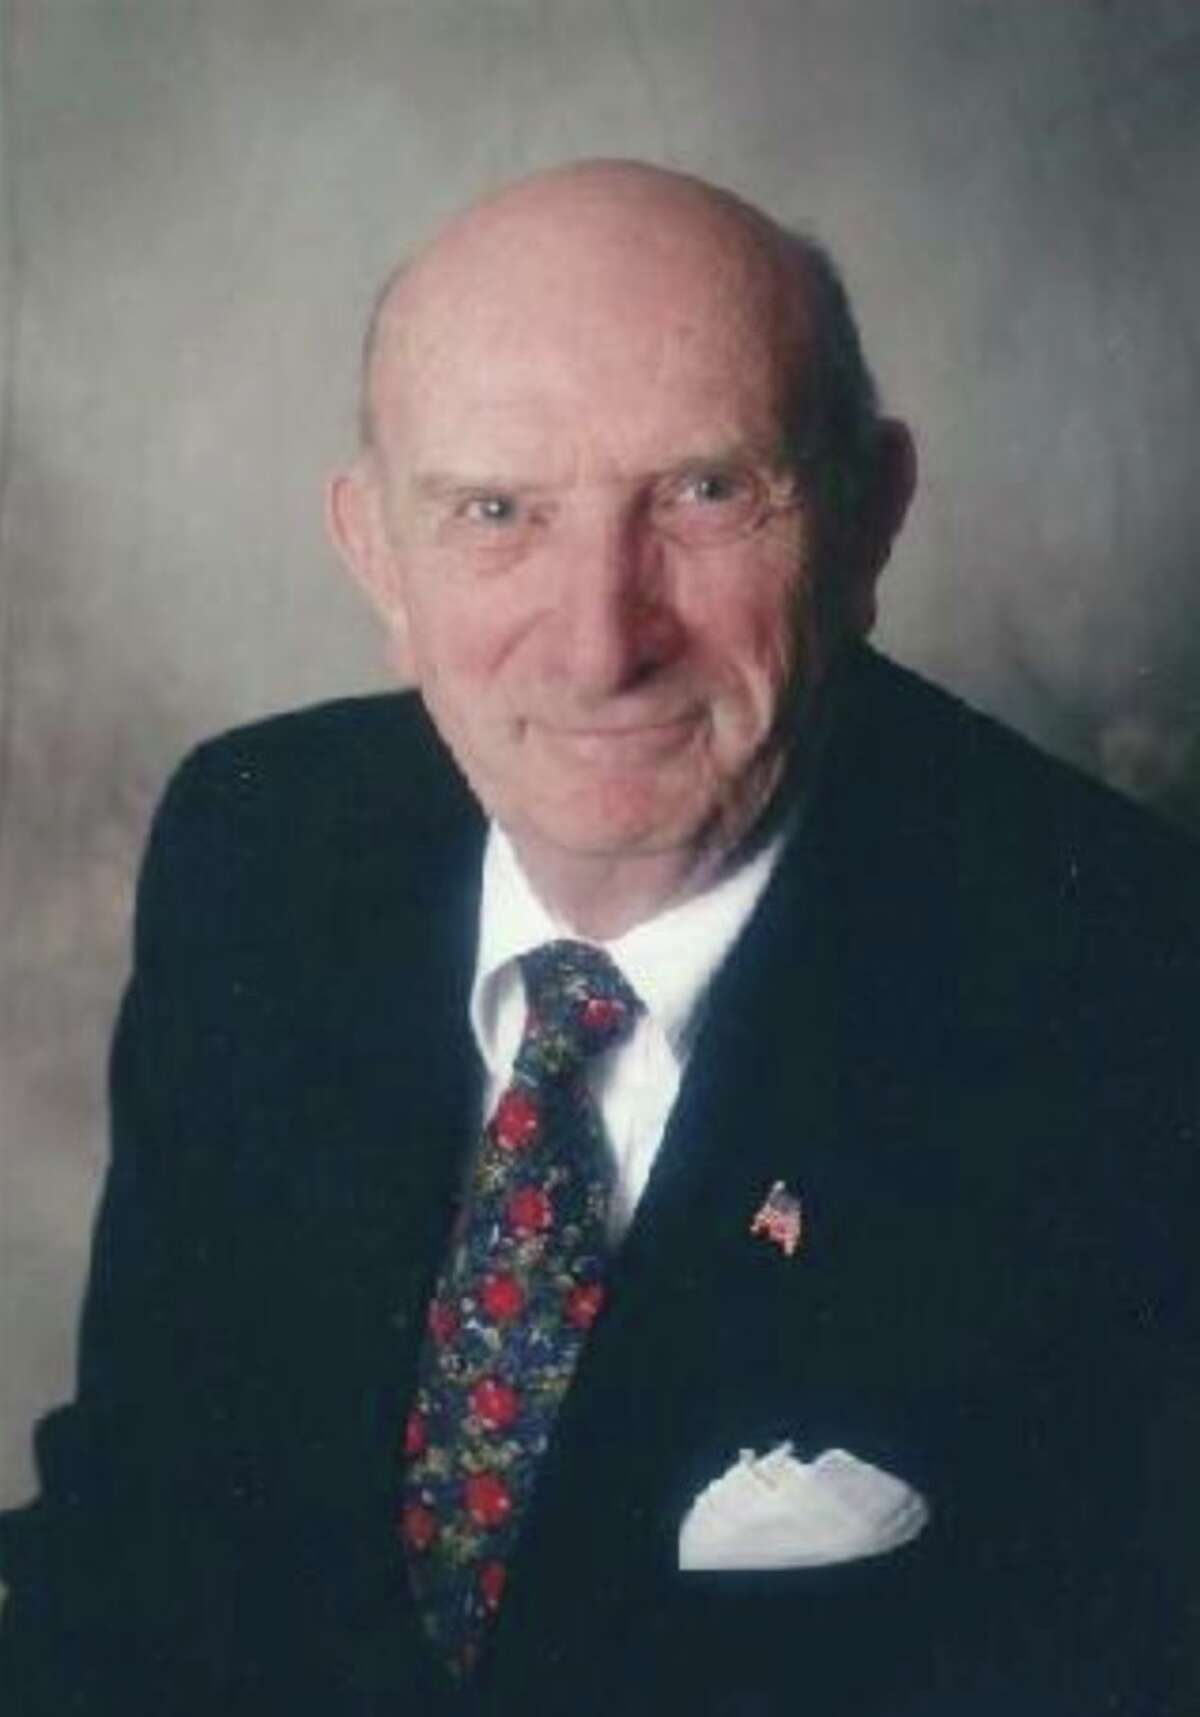 Longtime Proctors employee Edward J. Burke died on June 7, 2021 at the age of 93.